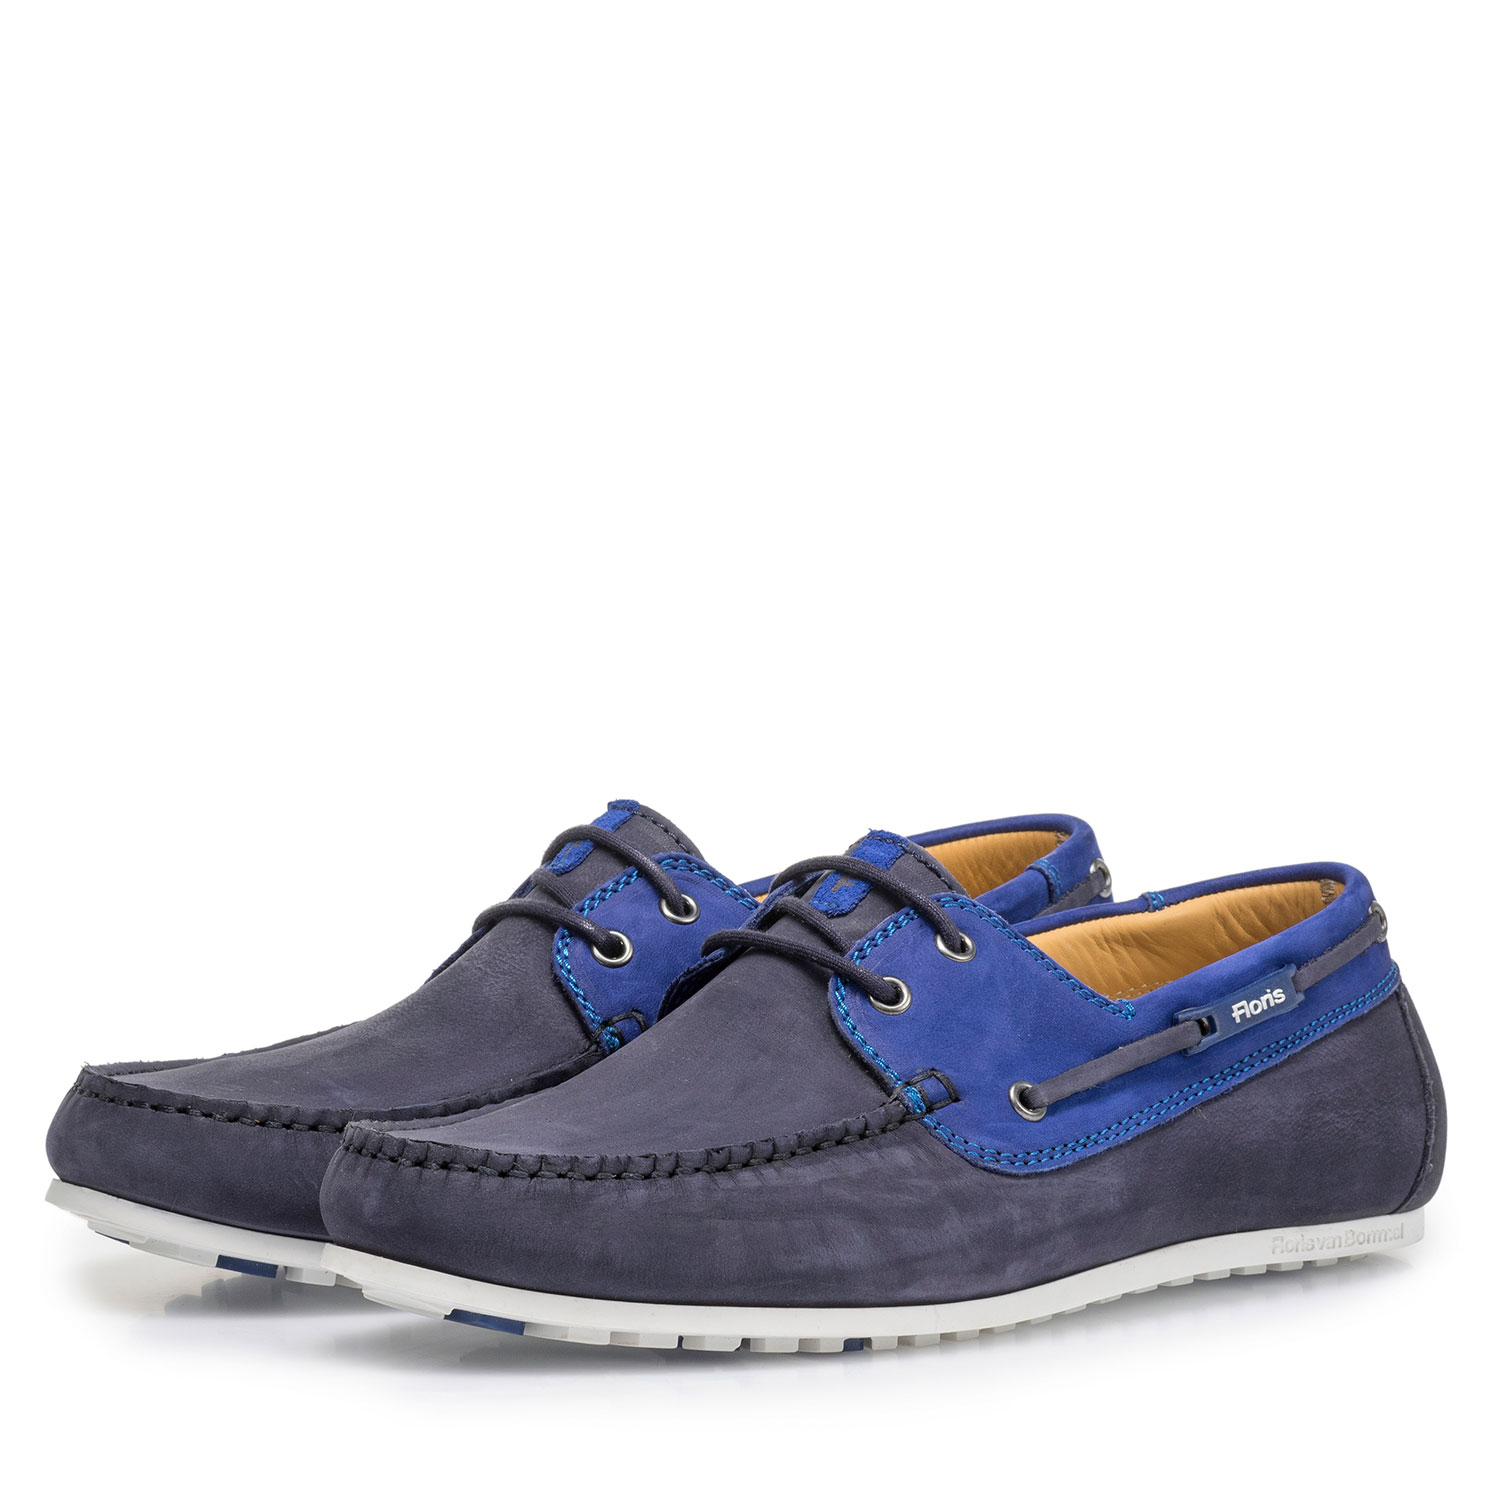 15035/12 - Blue nubuck leather boat shoe